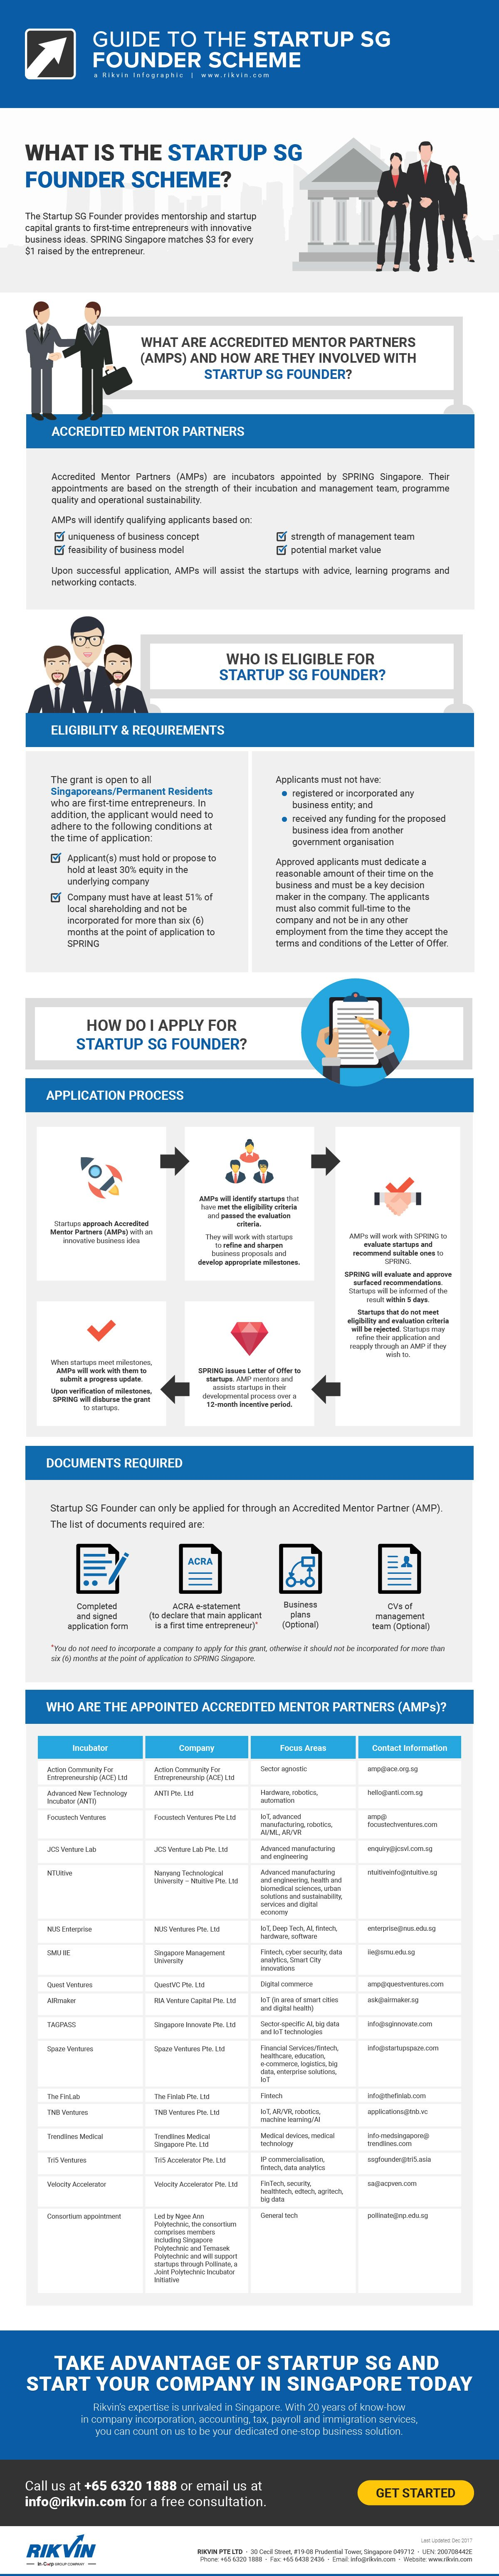 guide-to-the-startup-sg-founder-scheme Guide to the Startup SG Founder Scheme